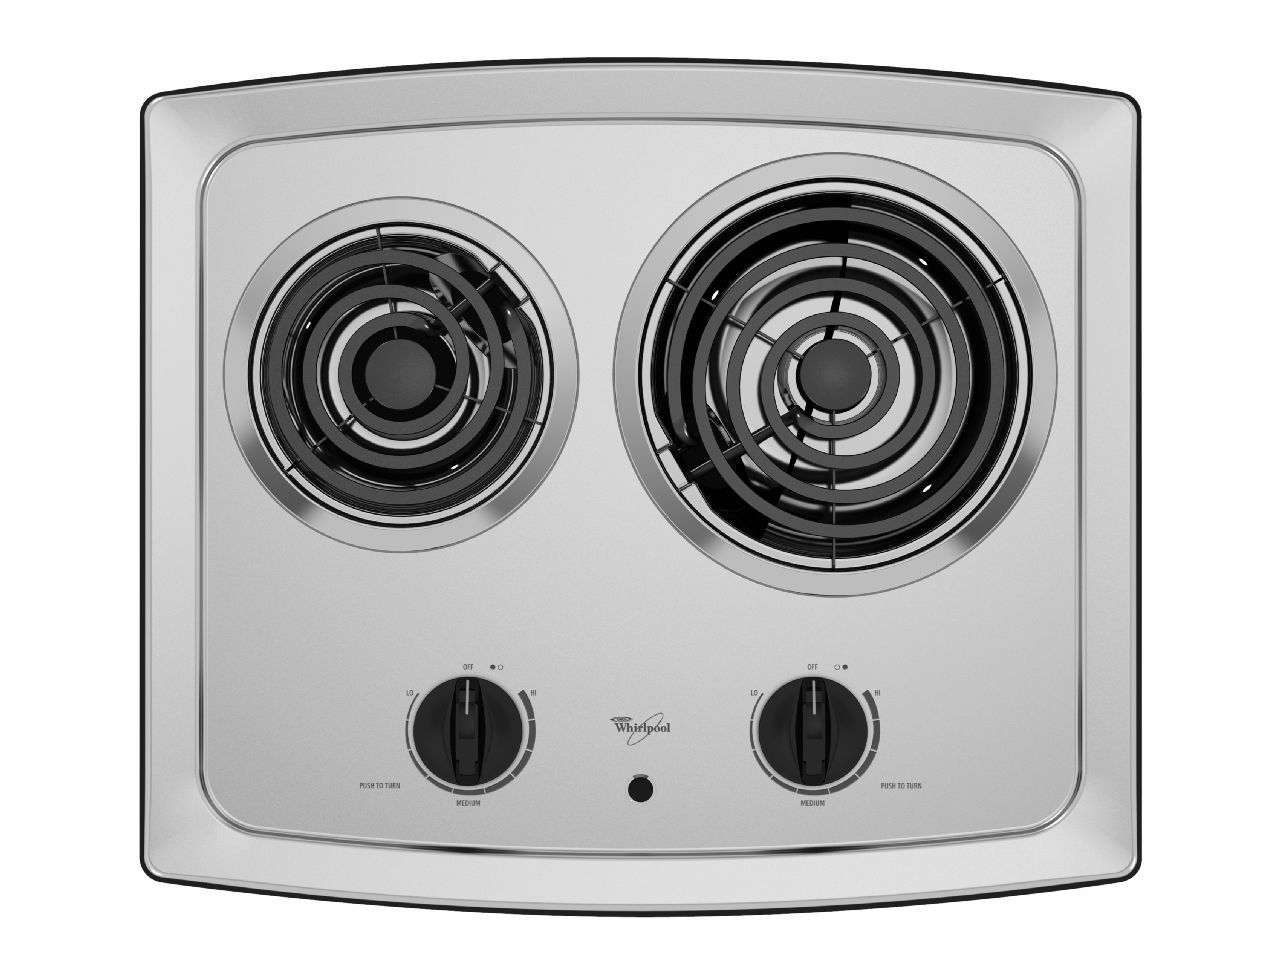 Whirlpool Range/Stove/Oven Model RCS2012RS02 Parts